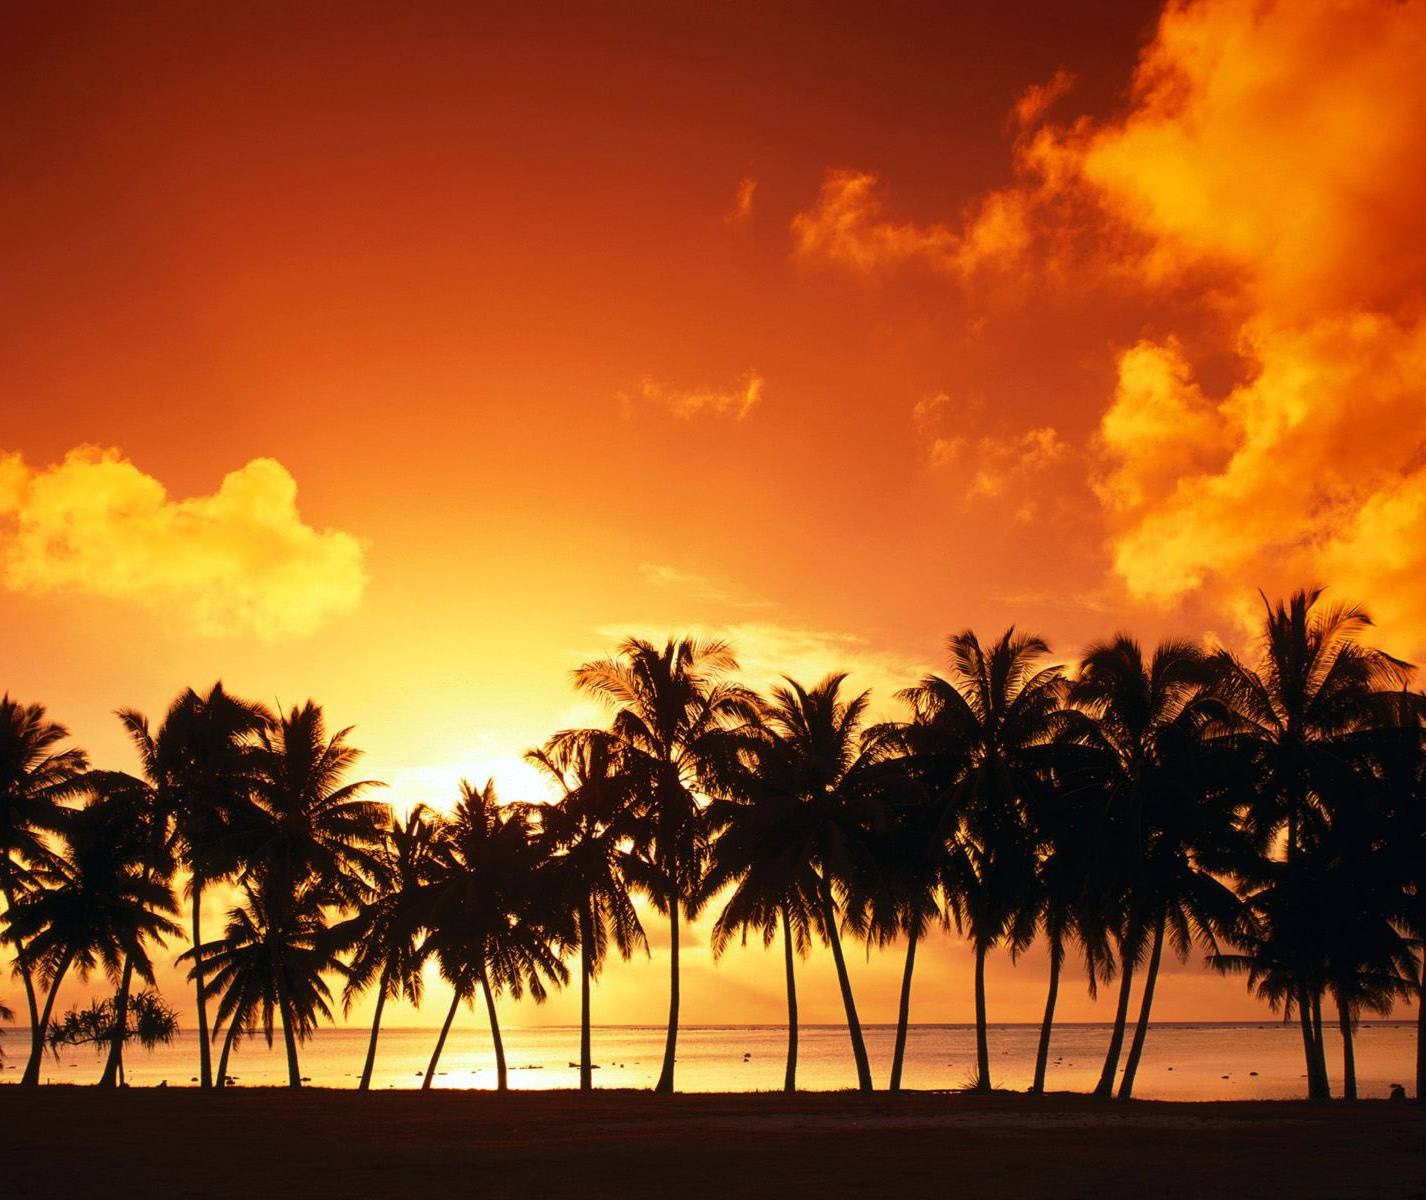 Palmtrees In Sunset